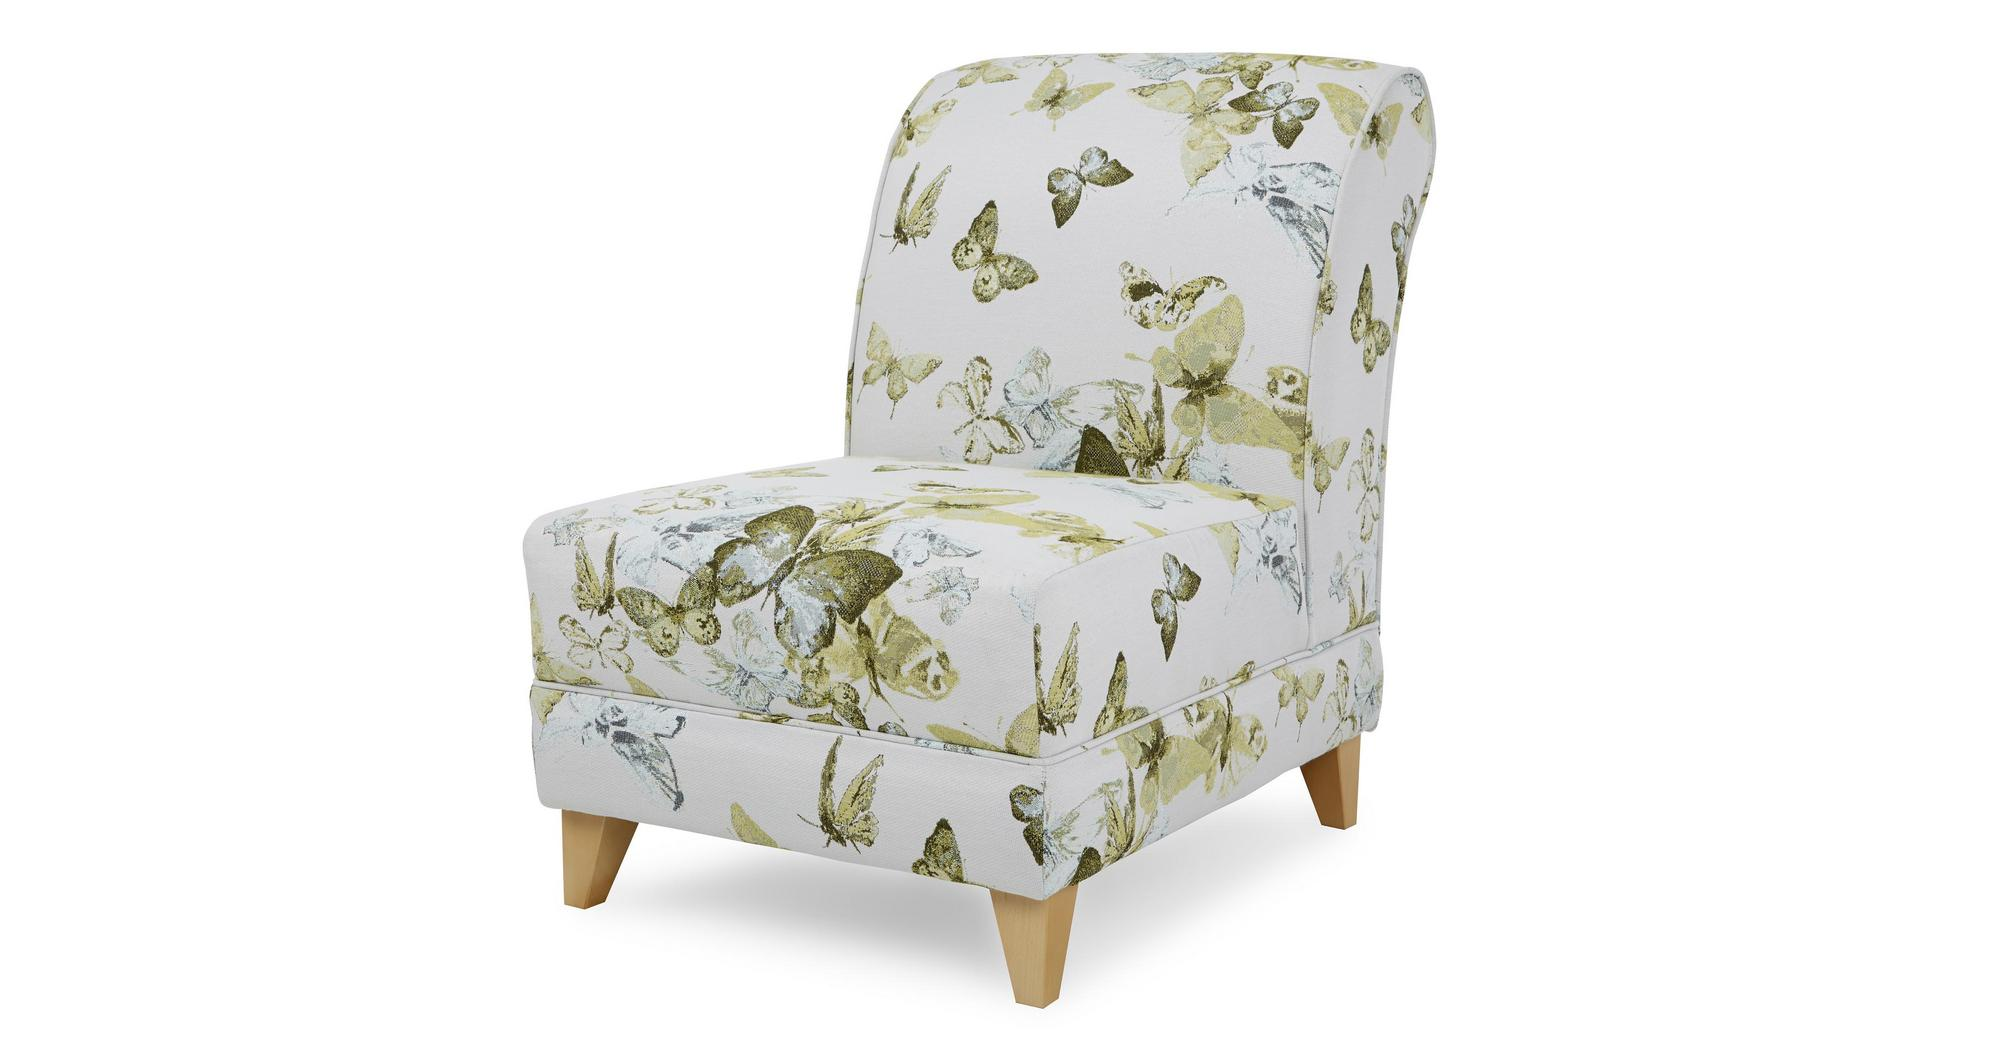 Lime Green Accent Chair Dfs Corinne Lime Green Fabric Patterned Accent Chair